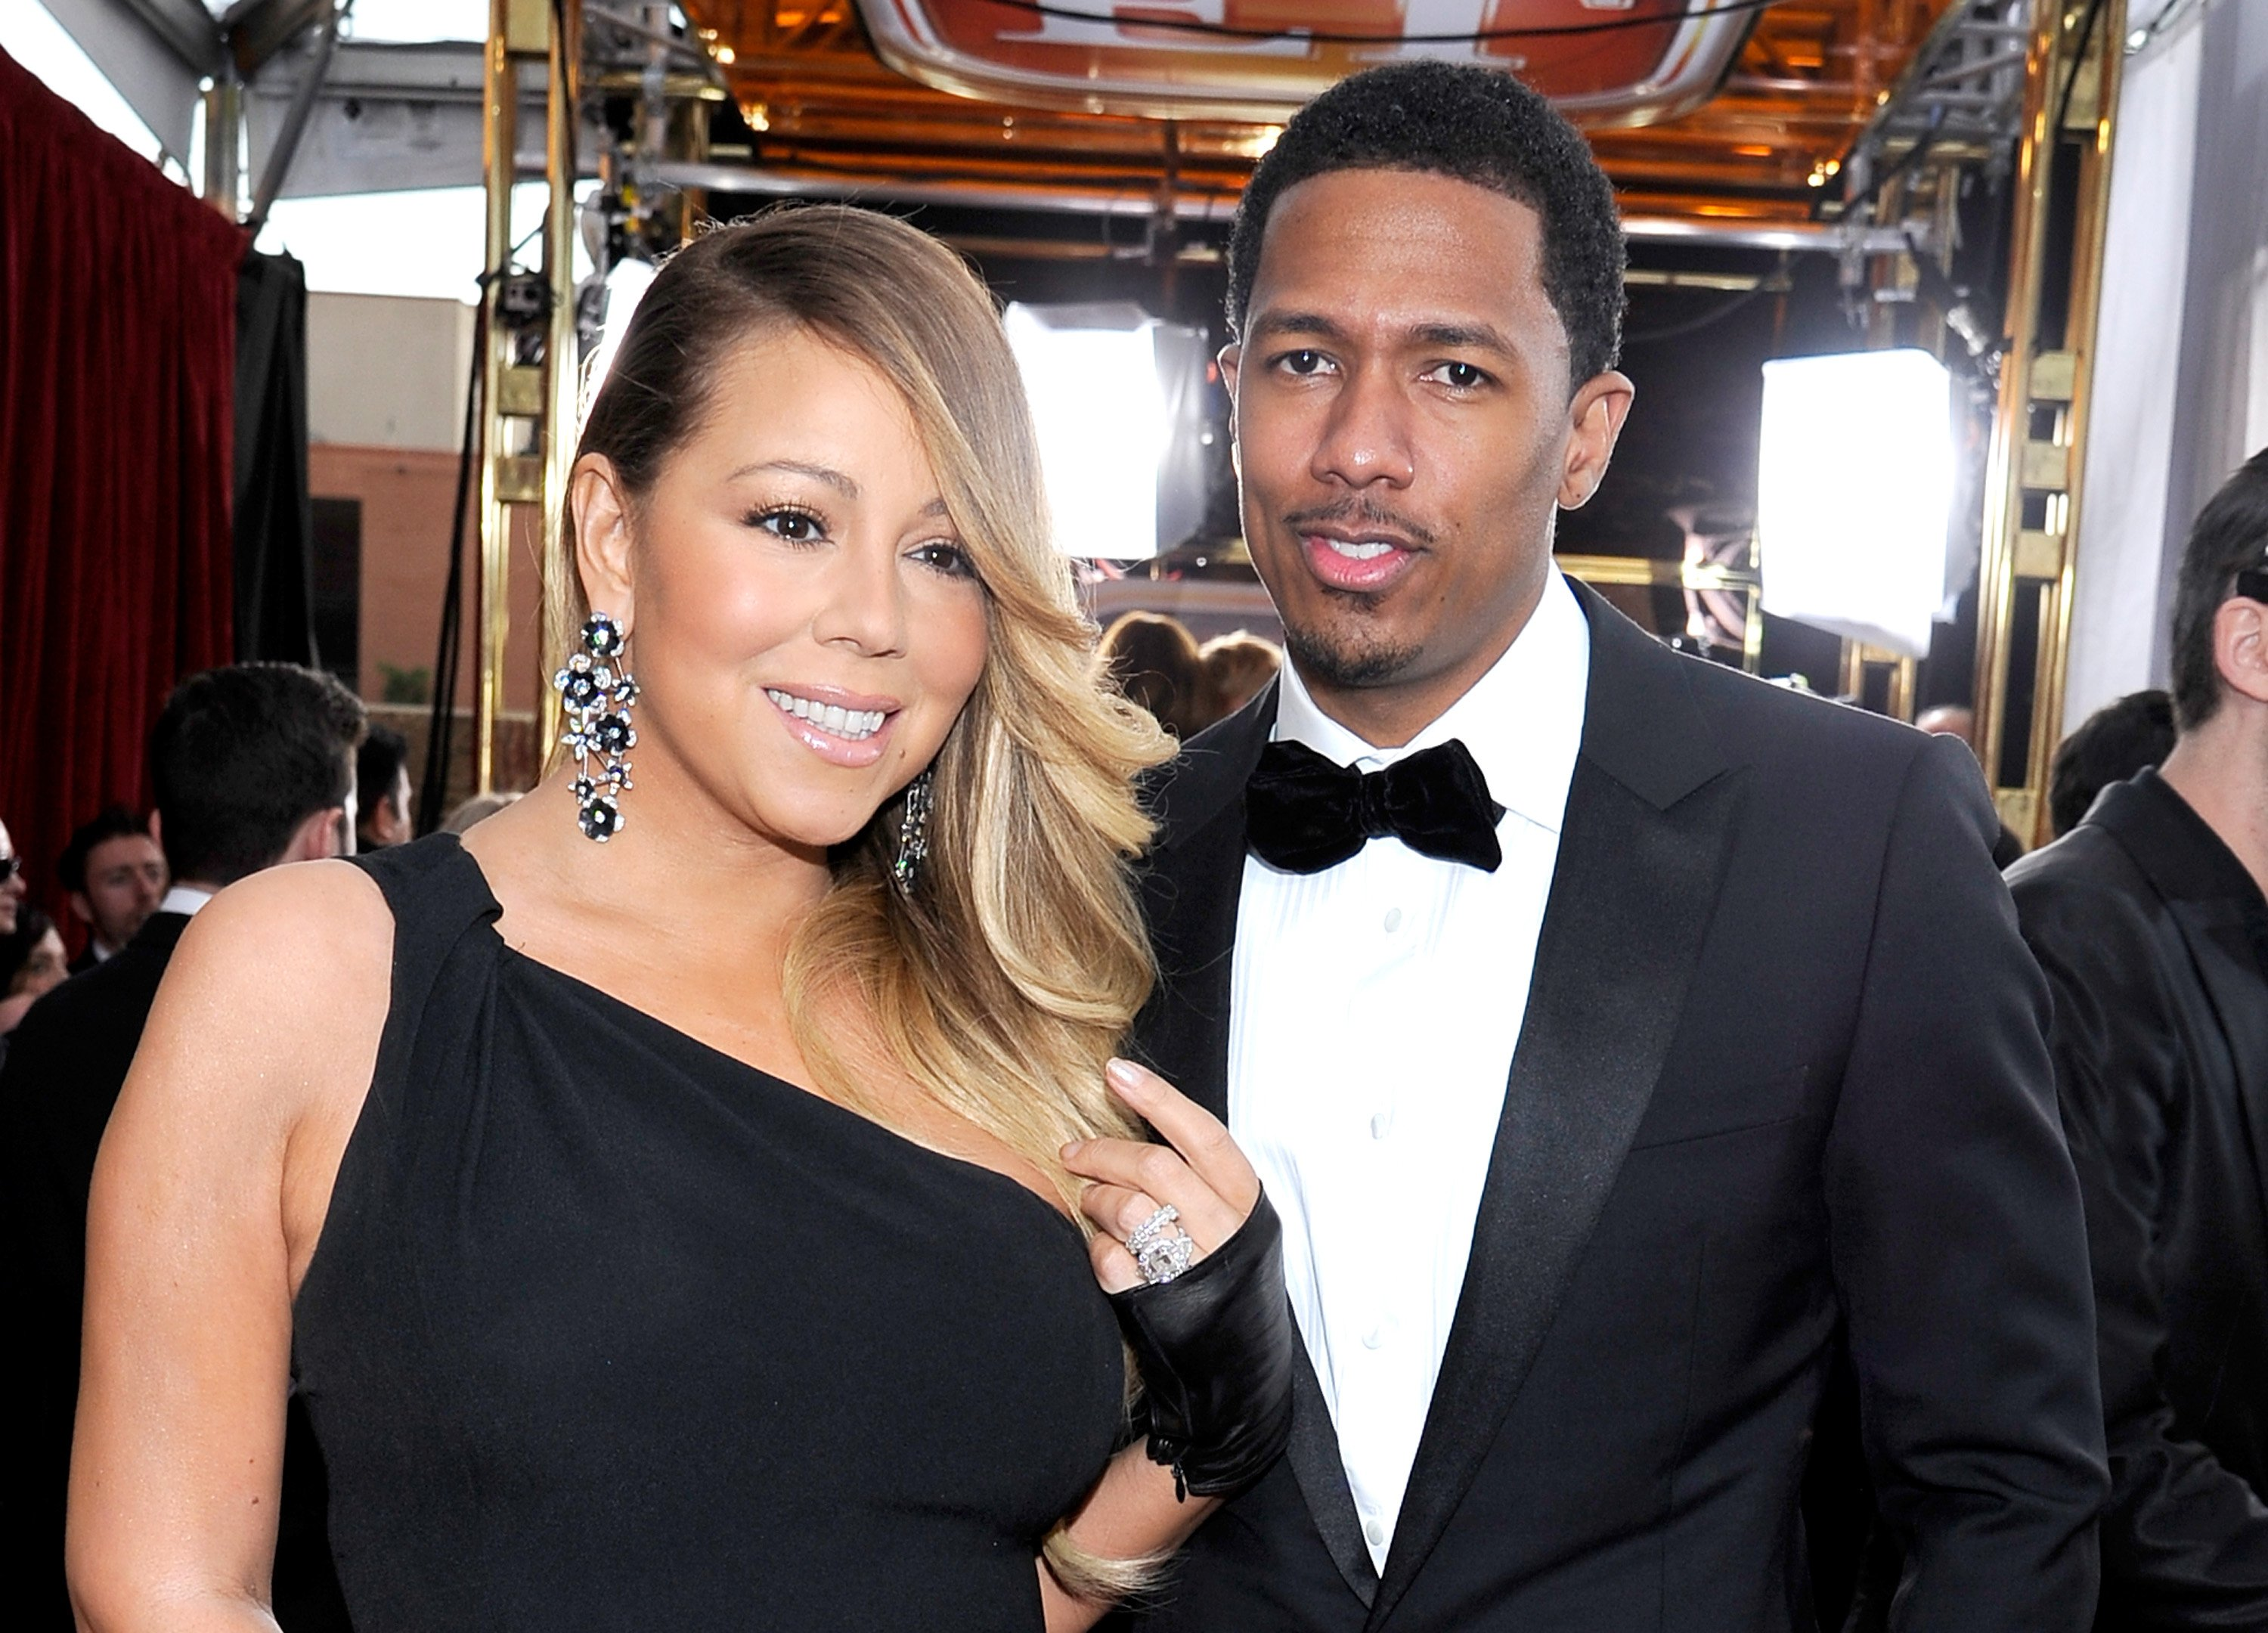 Mariah Carey and TV personality Nick Cannon attend the 20th Annual Screen Actors Guild Awards at The Shrine Auditorium on January 18, 2014 in Los Angeles, California | Photo: Getty Images